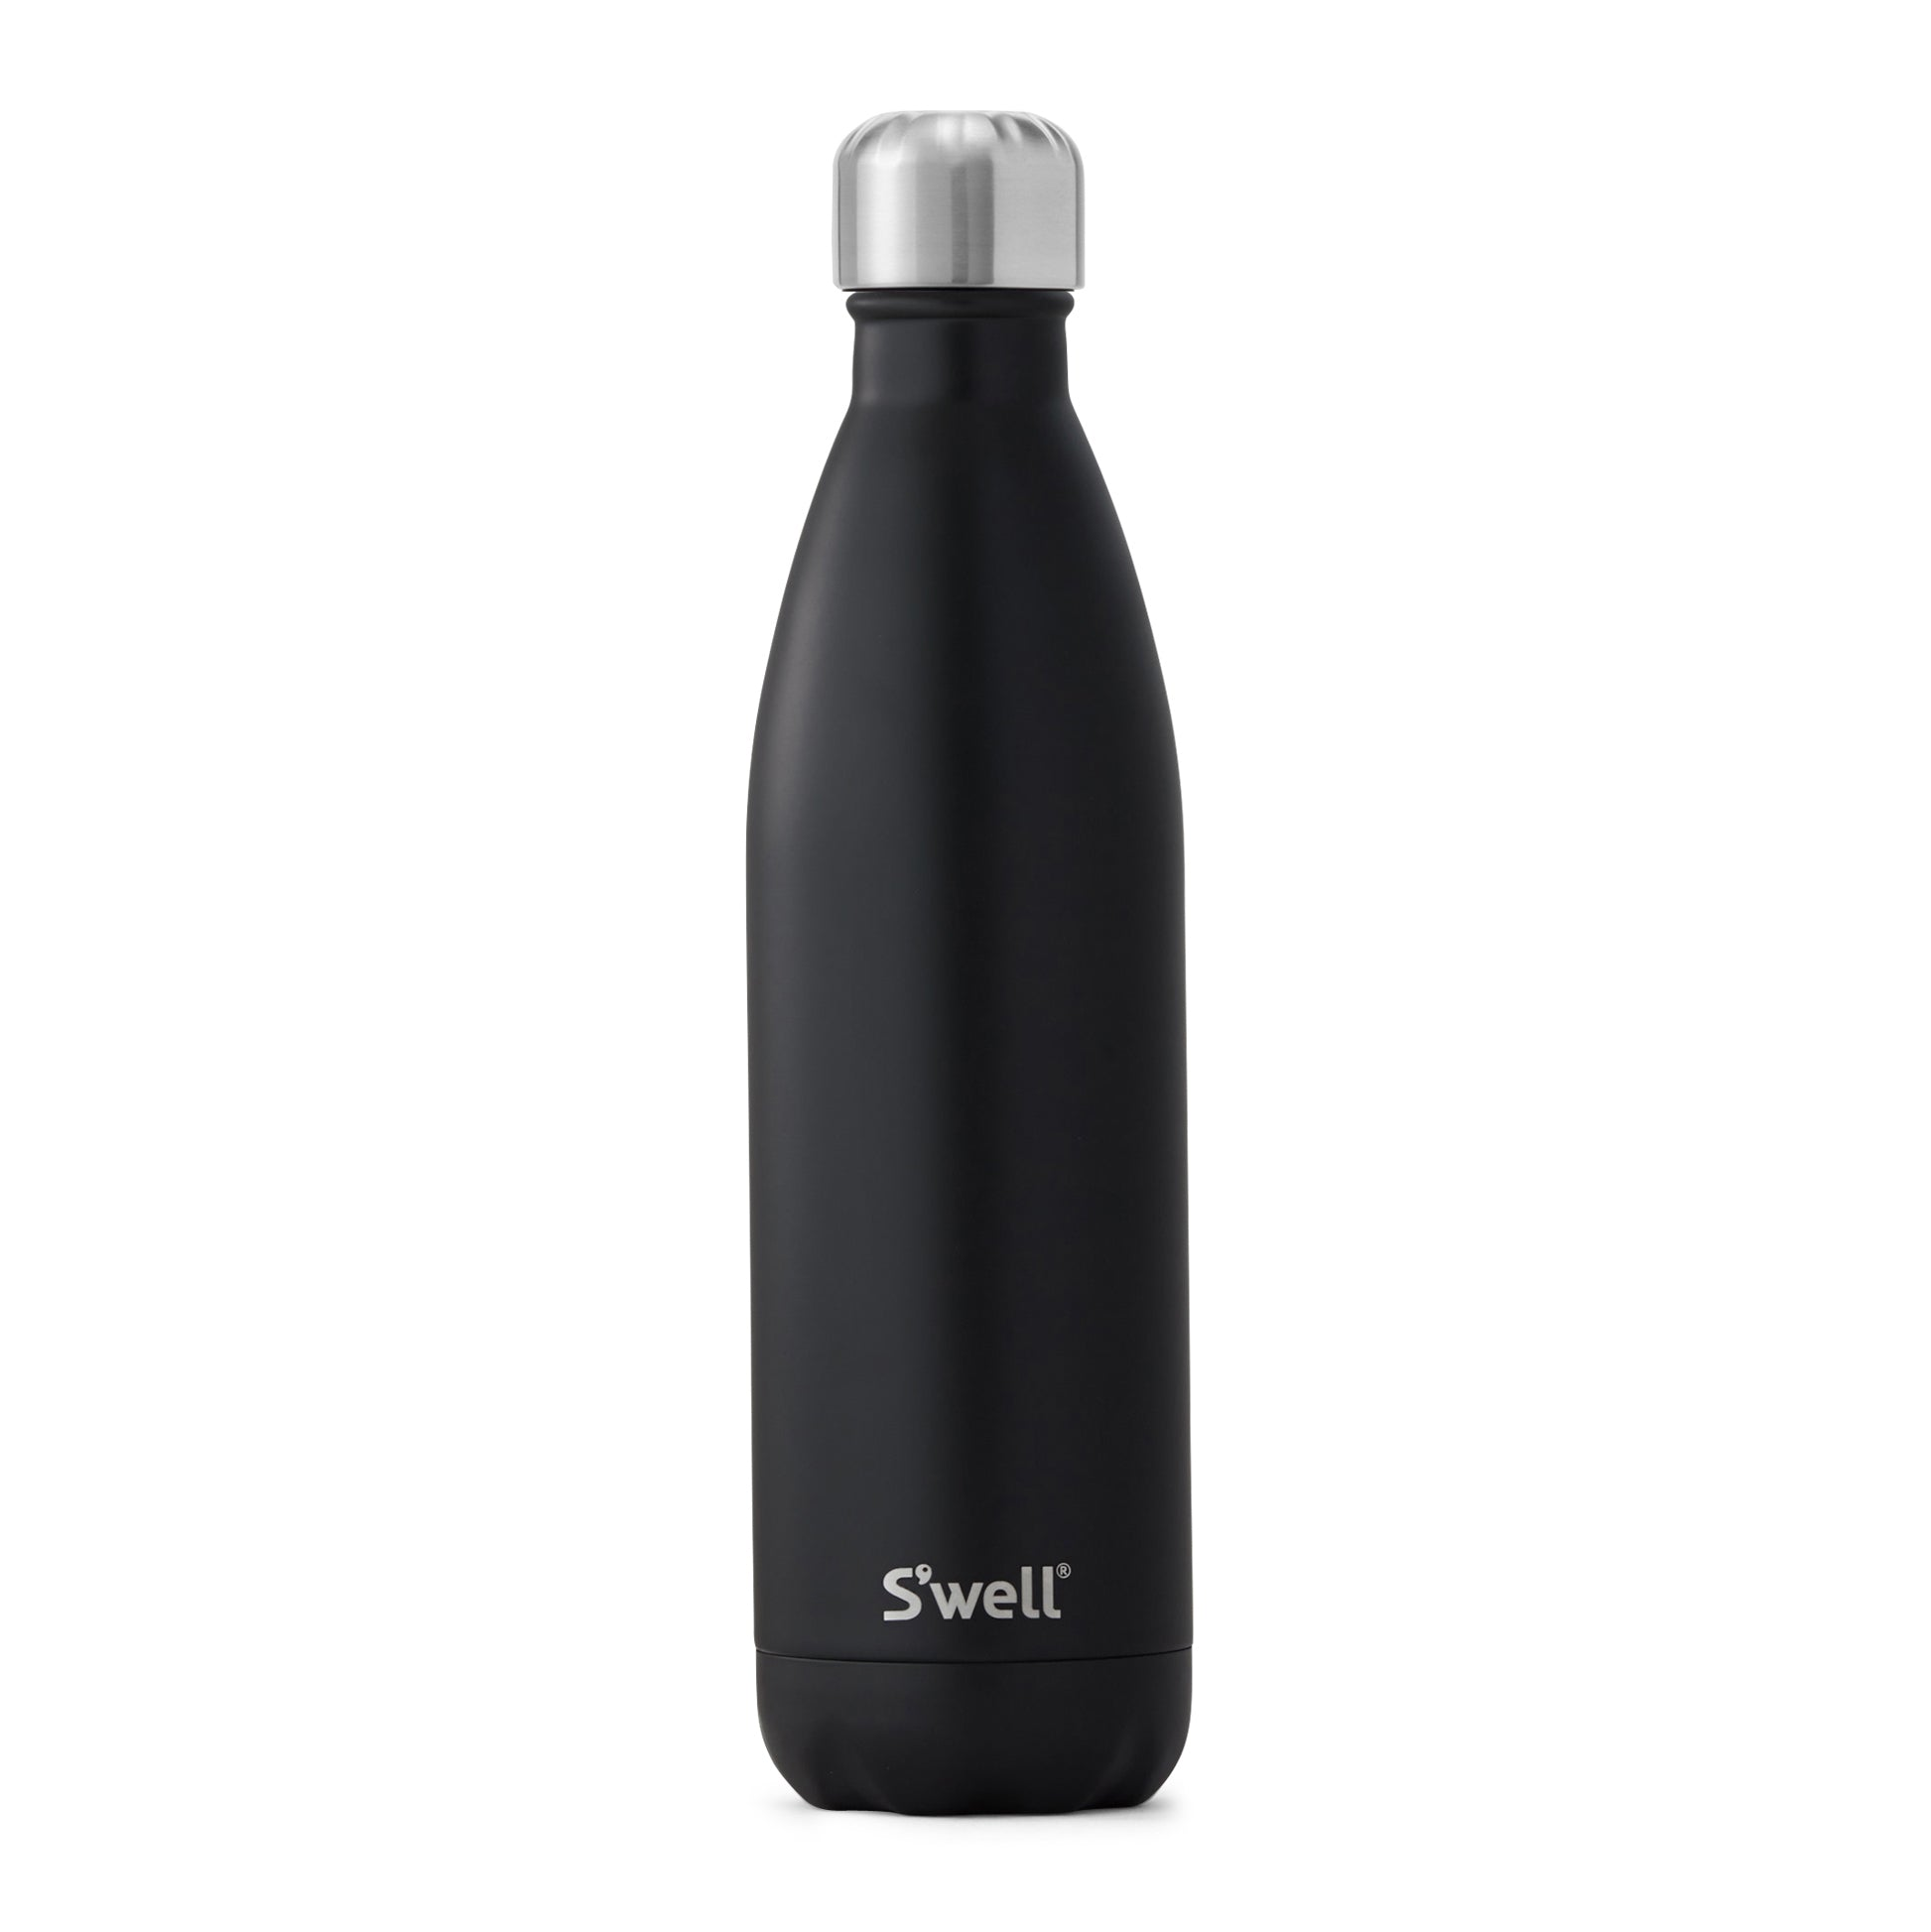 S'well water bottle in stone azurite